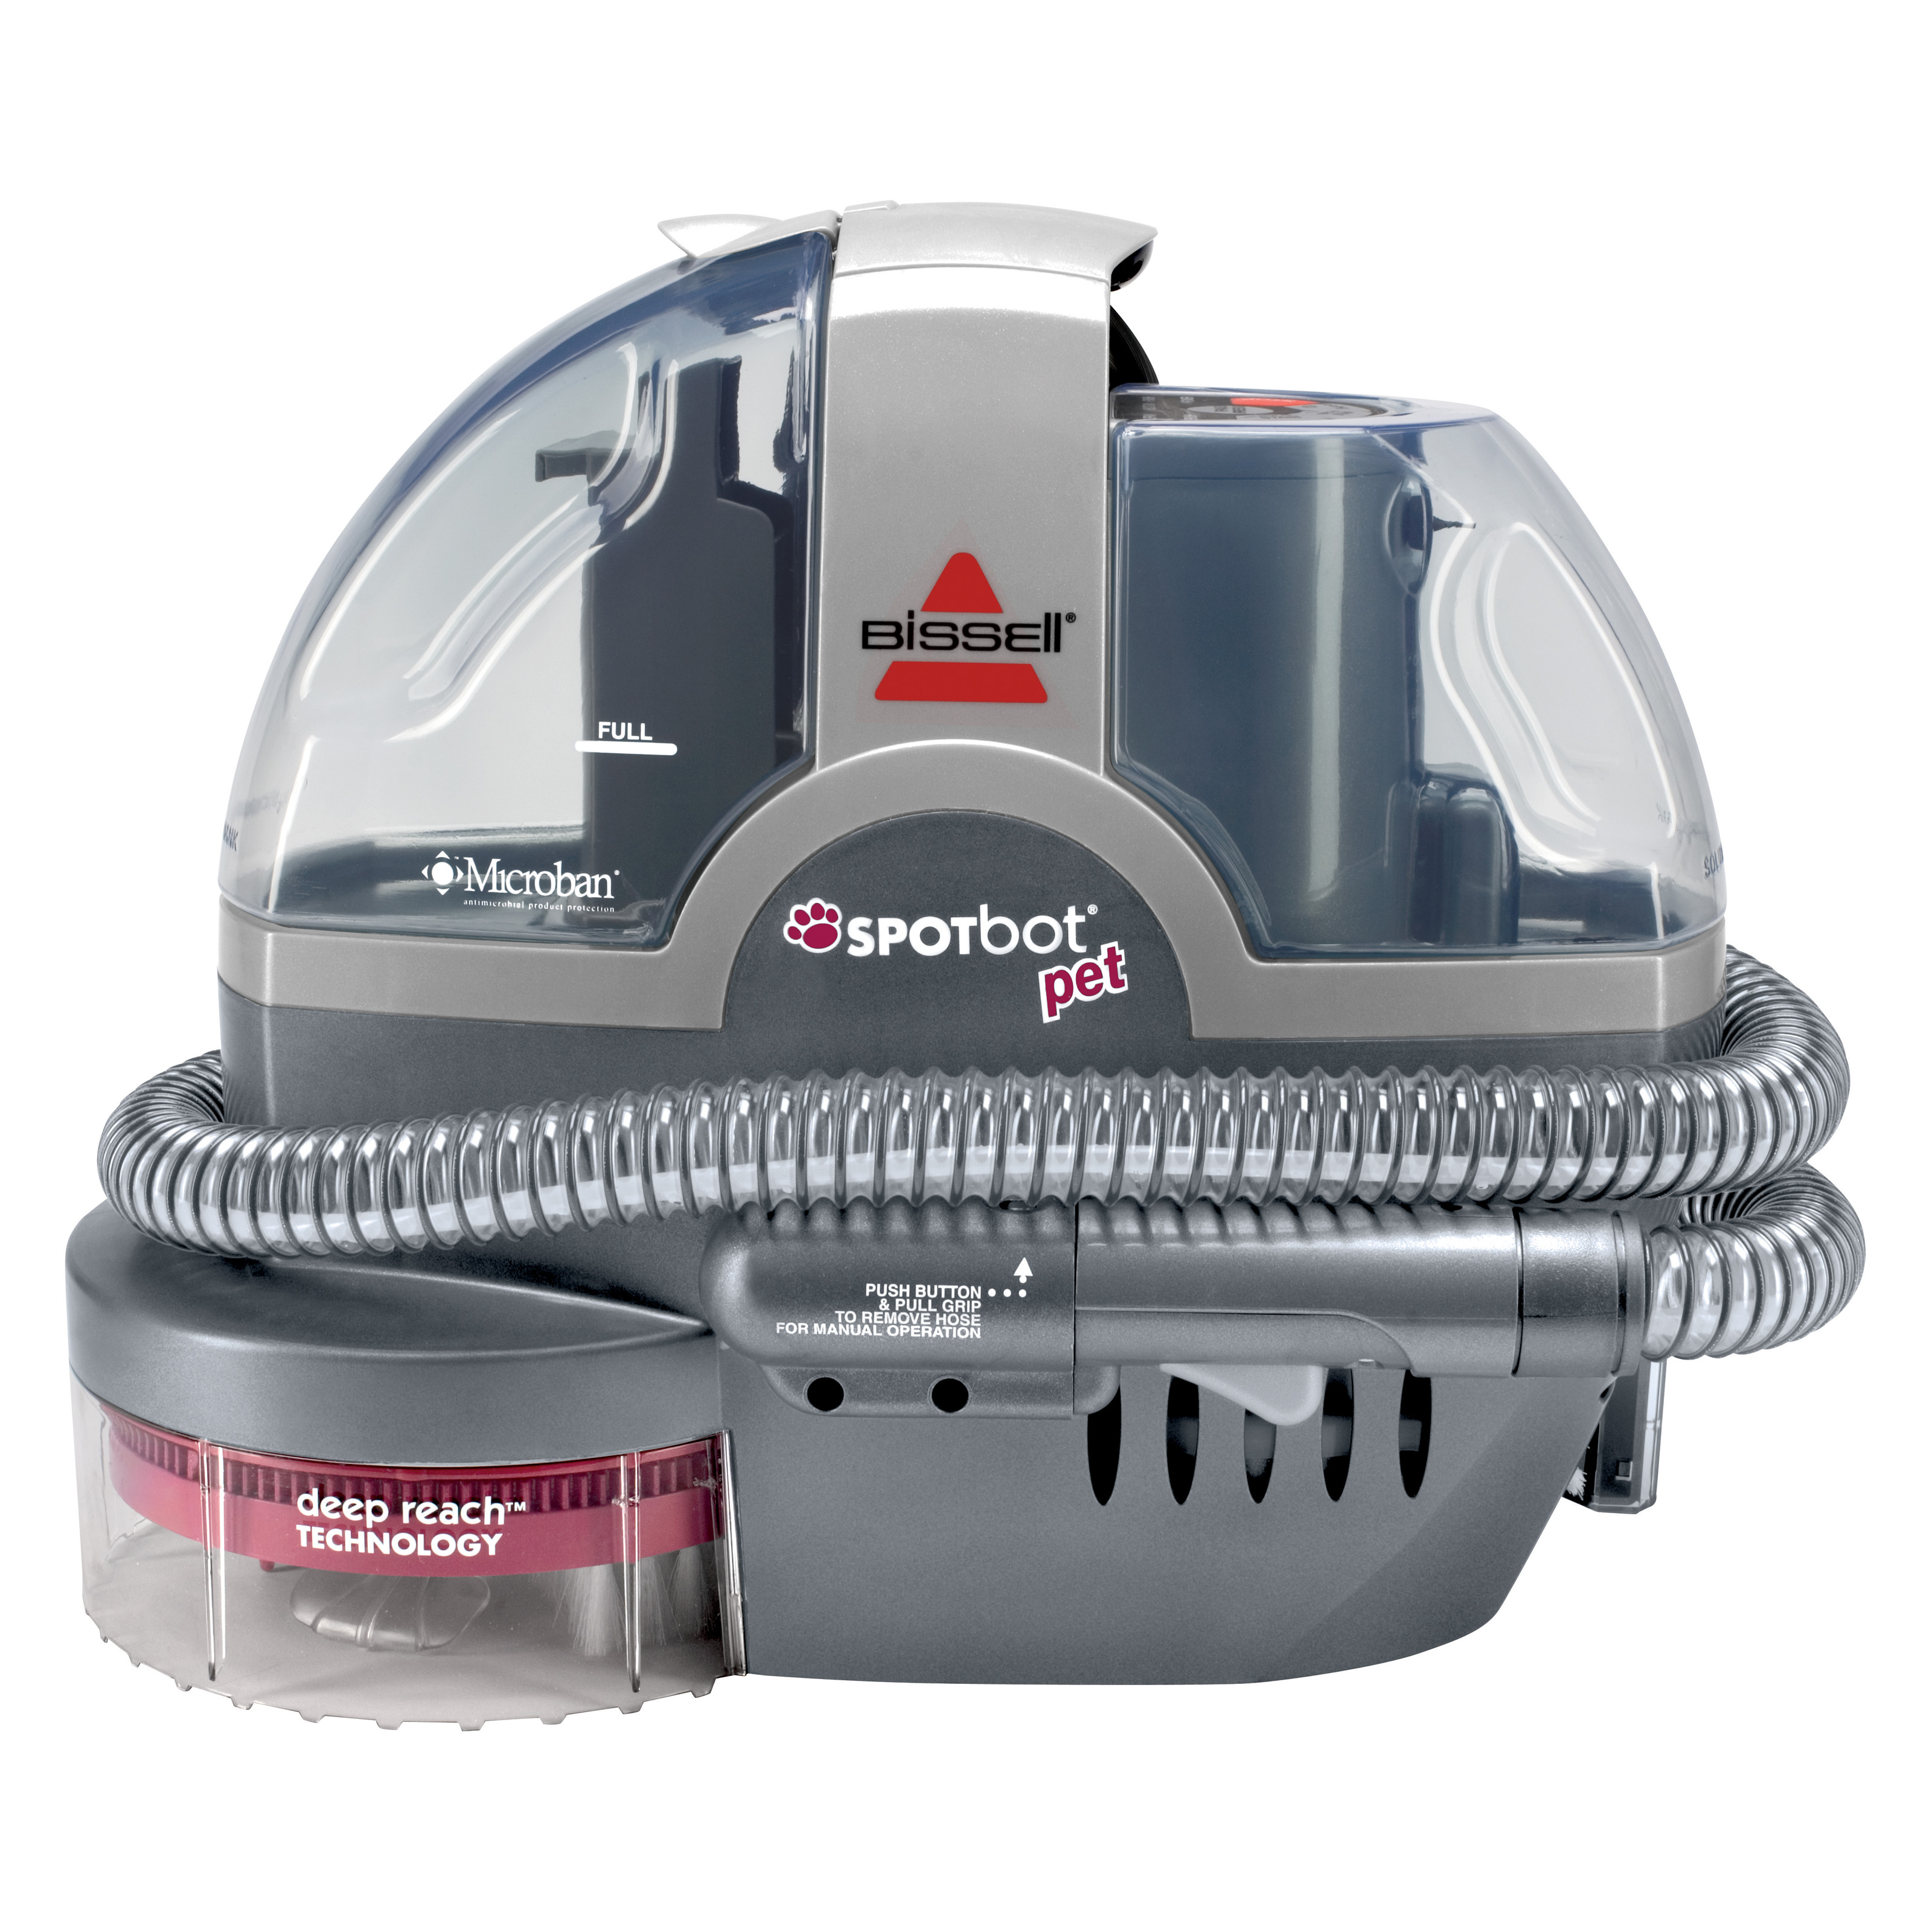 Bissell Spotbot Portable Hand Held Pet Carpet Cleaner 33n8